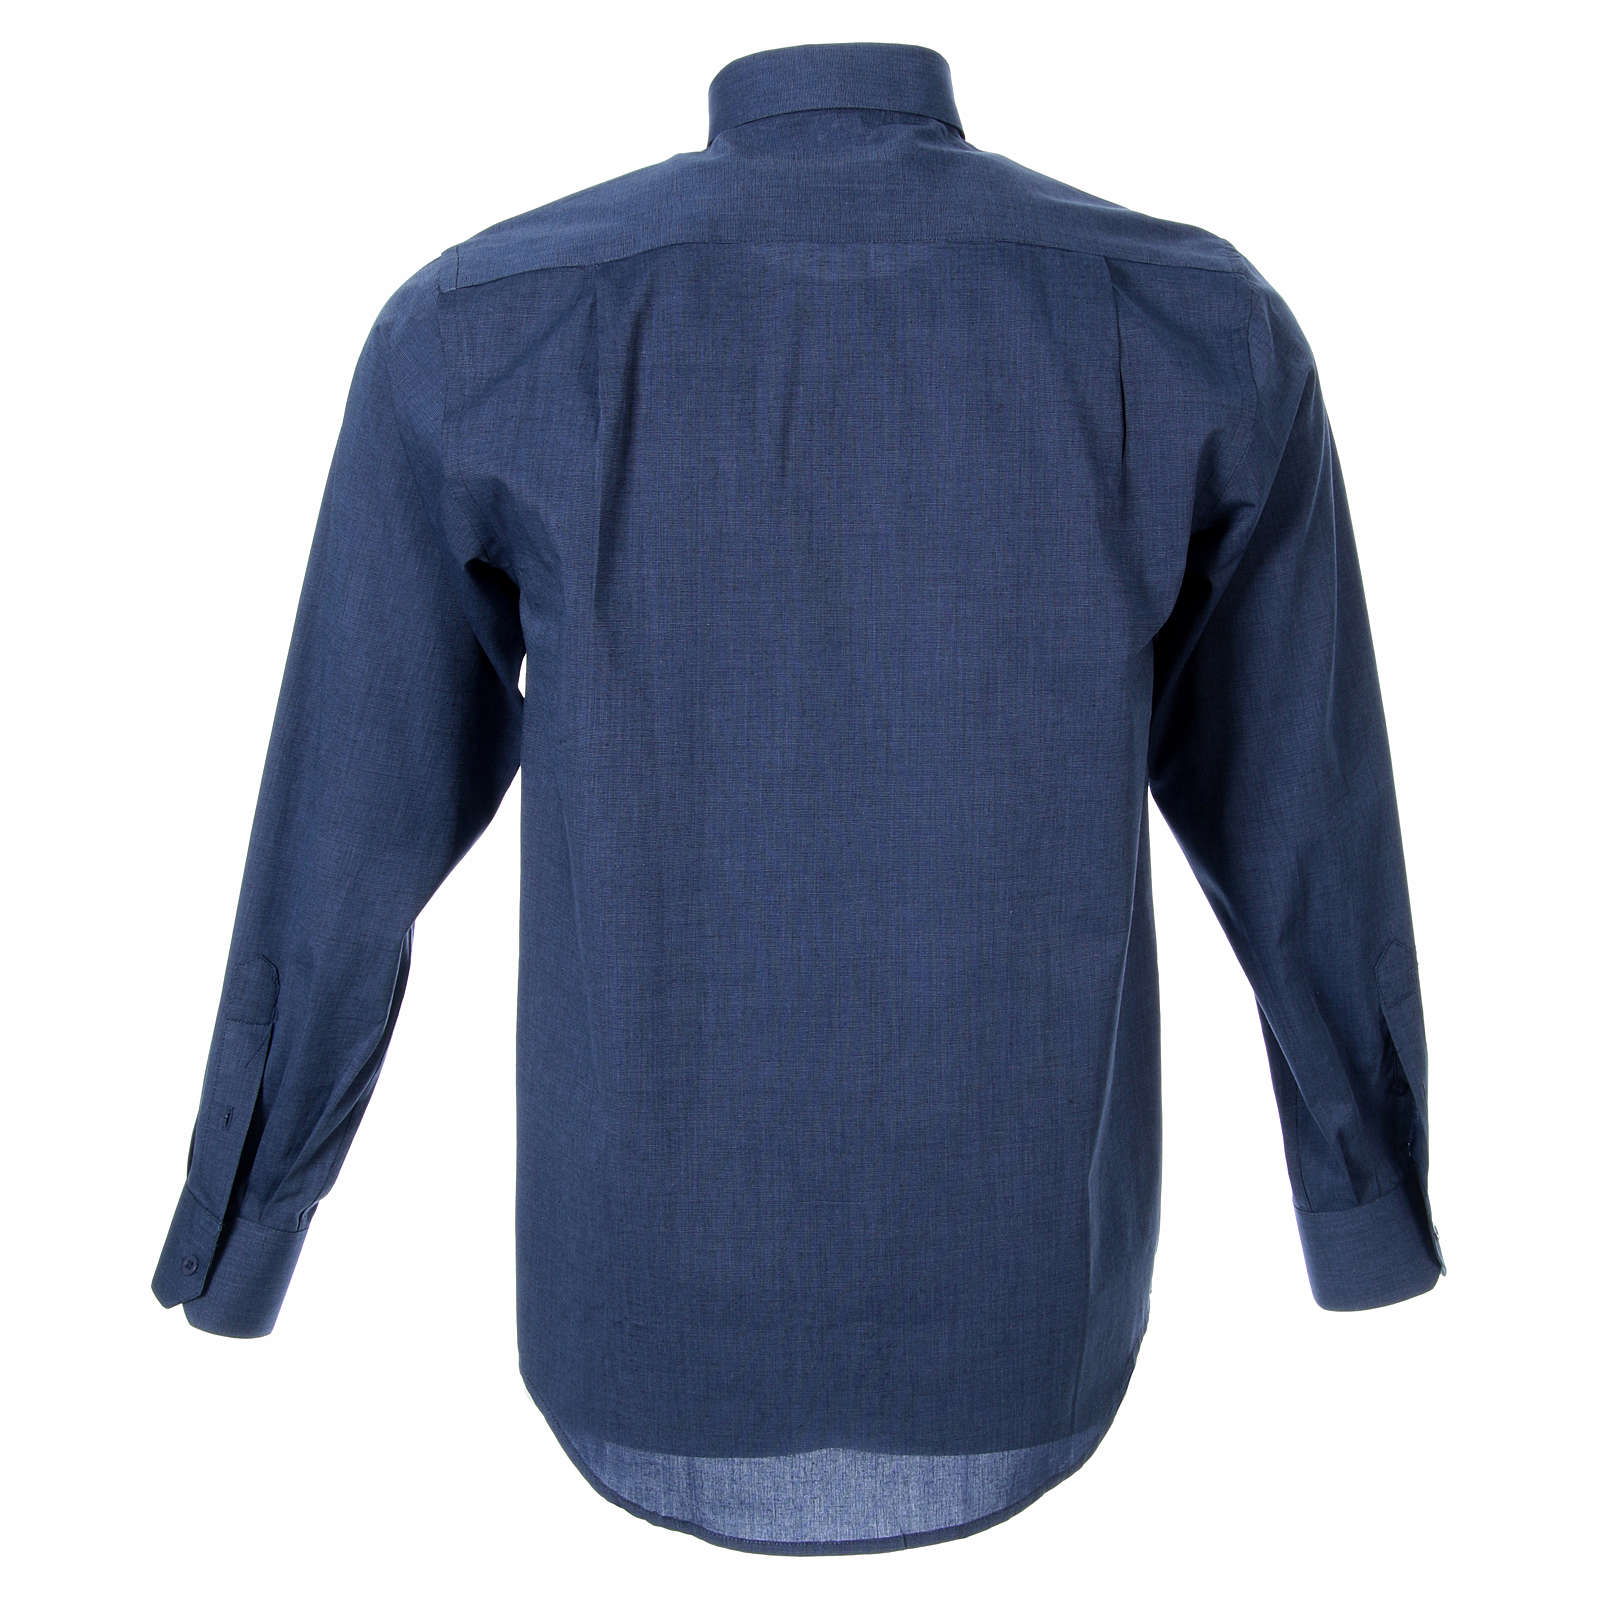 STOCK clergy shirt, long sleeves blue end-on-end 4